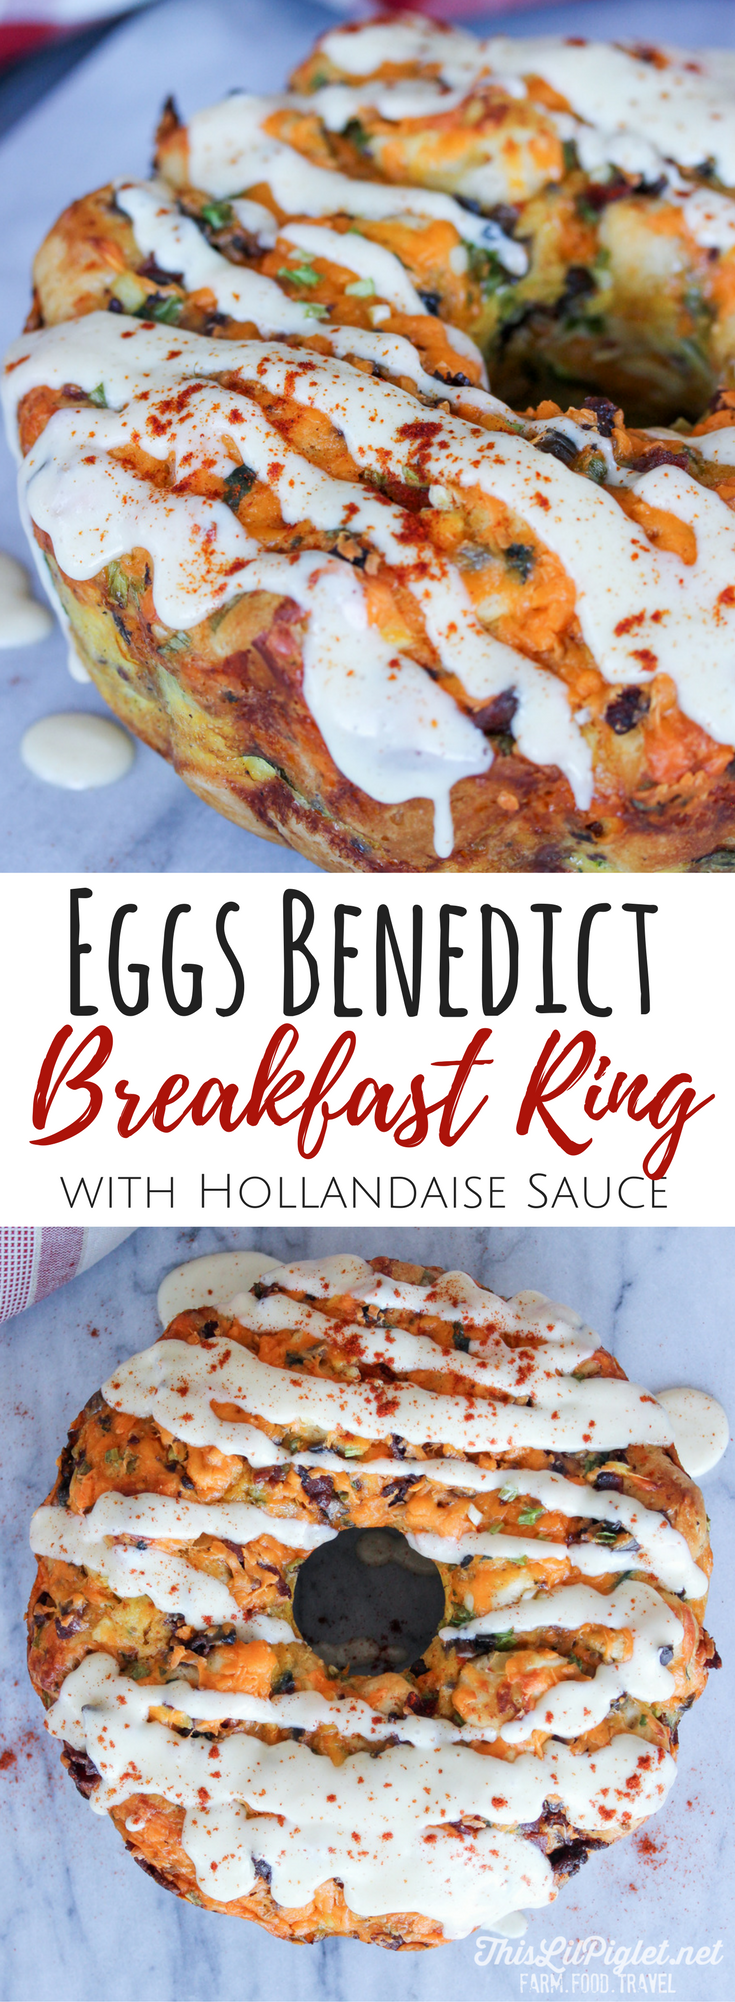 Eggs Benedict Breakfast Ring with Hollandaise Sauce Easy Brunch Ideas // thislilpiglet.net